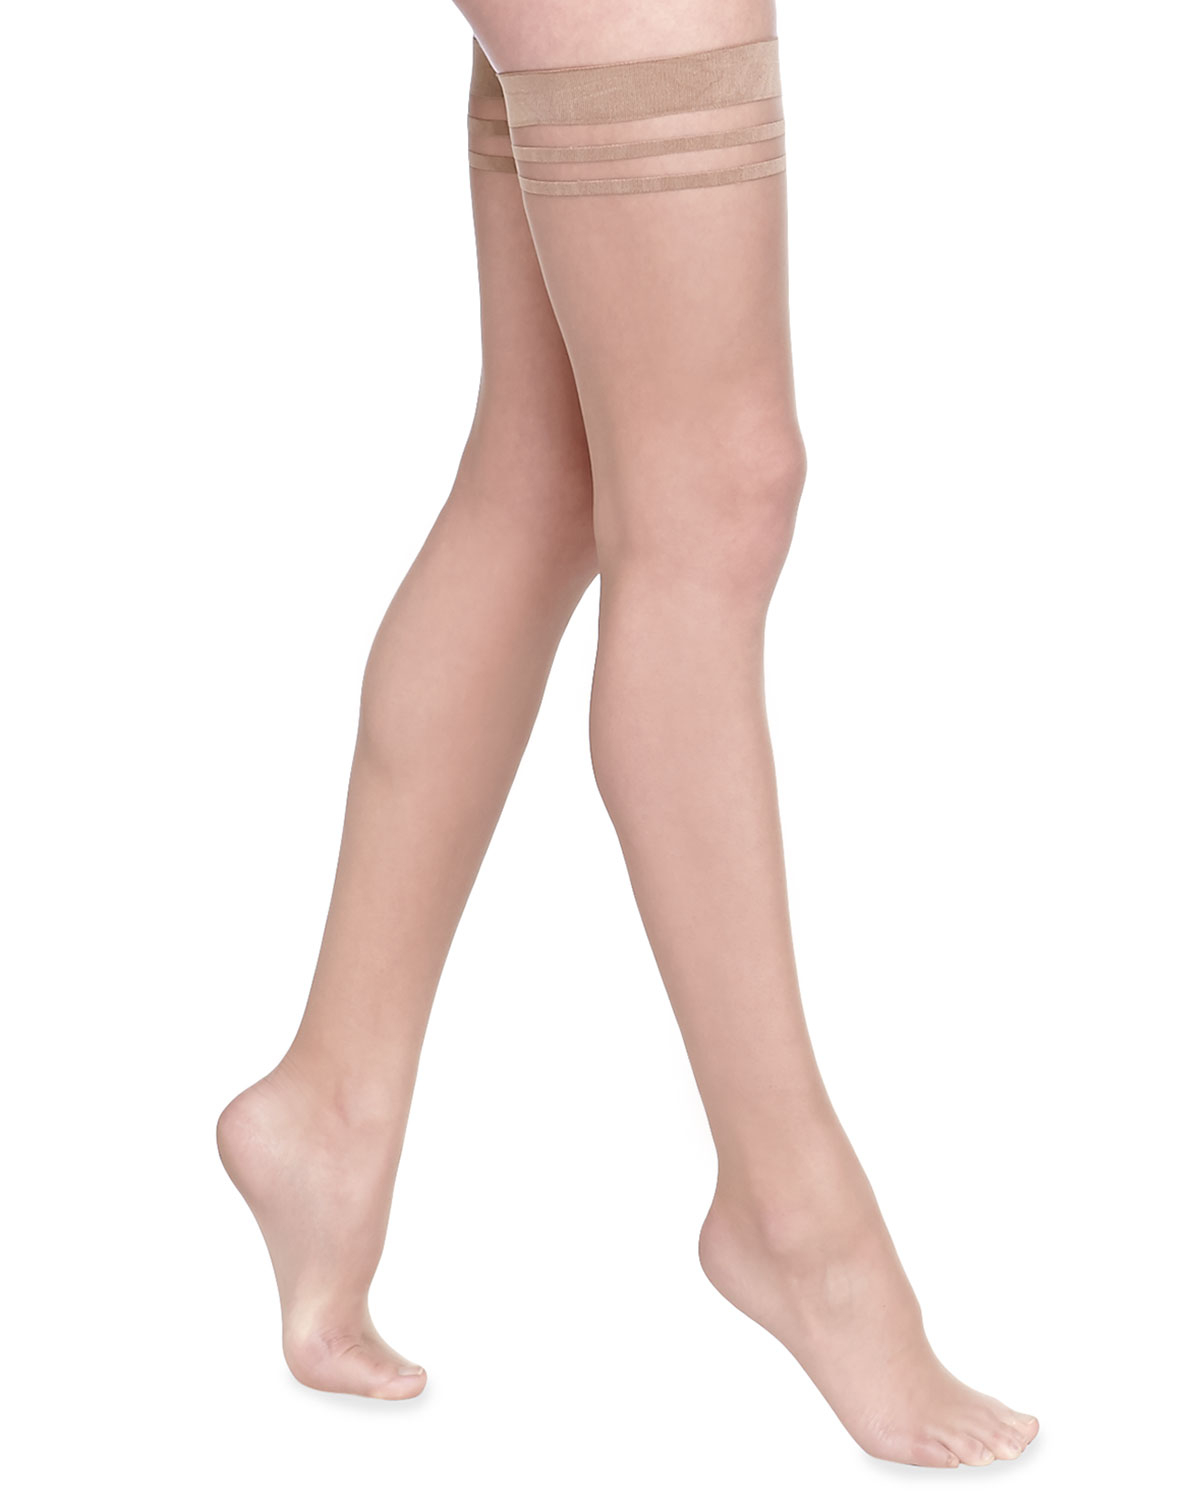 fba87cd03 Alice + Olivia Opaque Thigh-high Stockings in Natural - Lyst